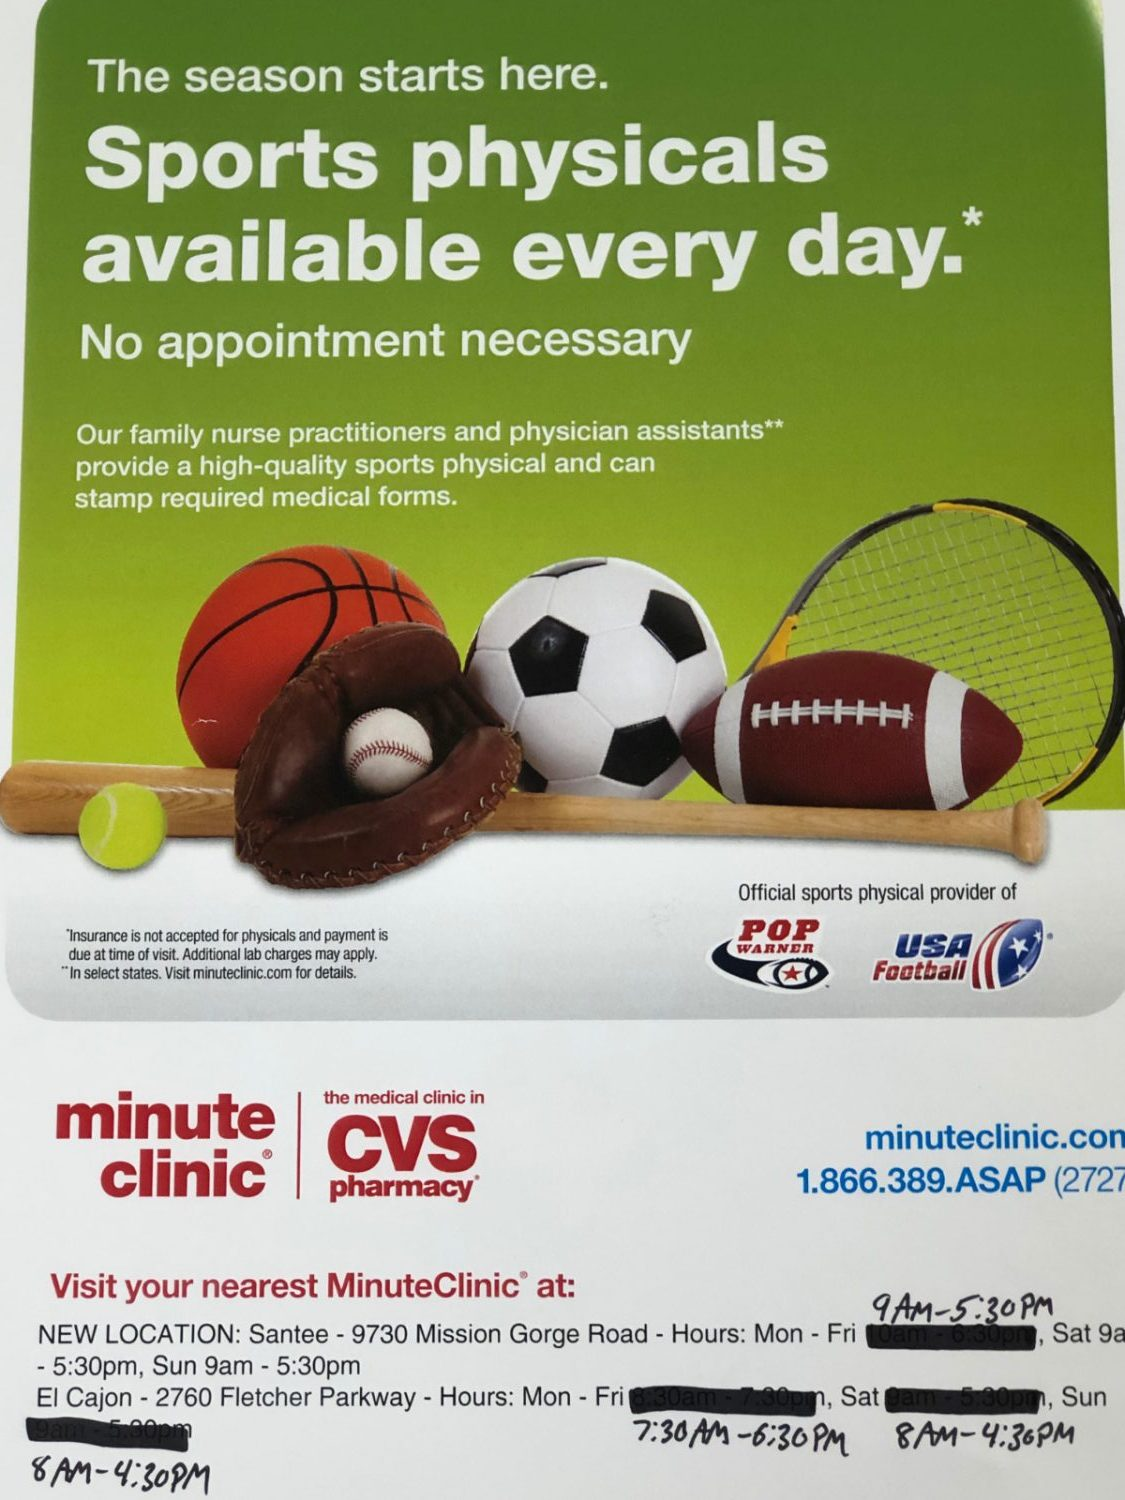 Minute Clinic Santee Sports Physicals